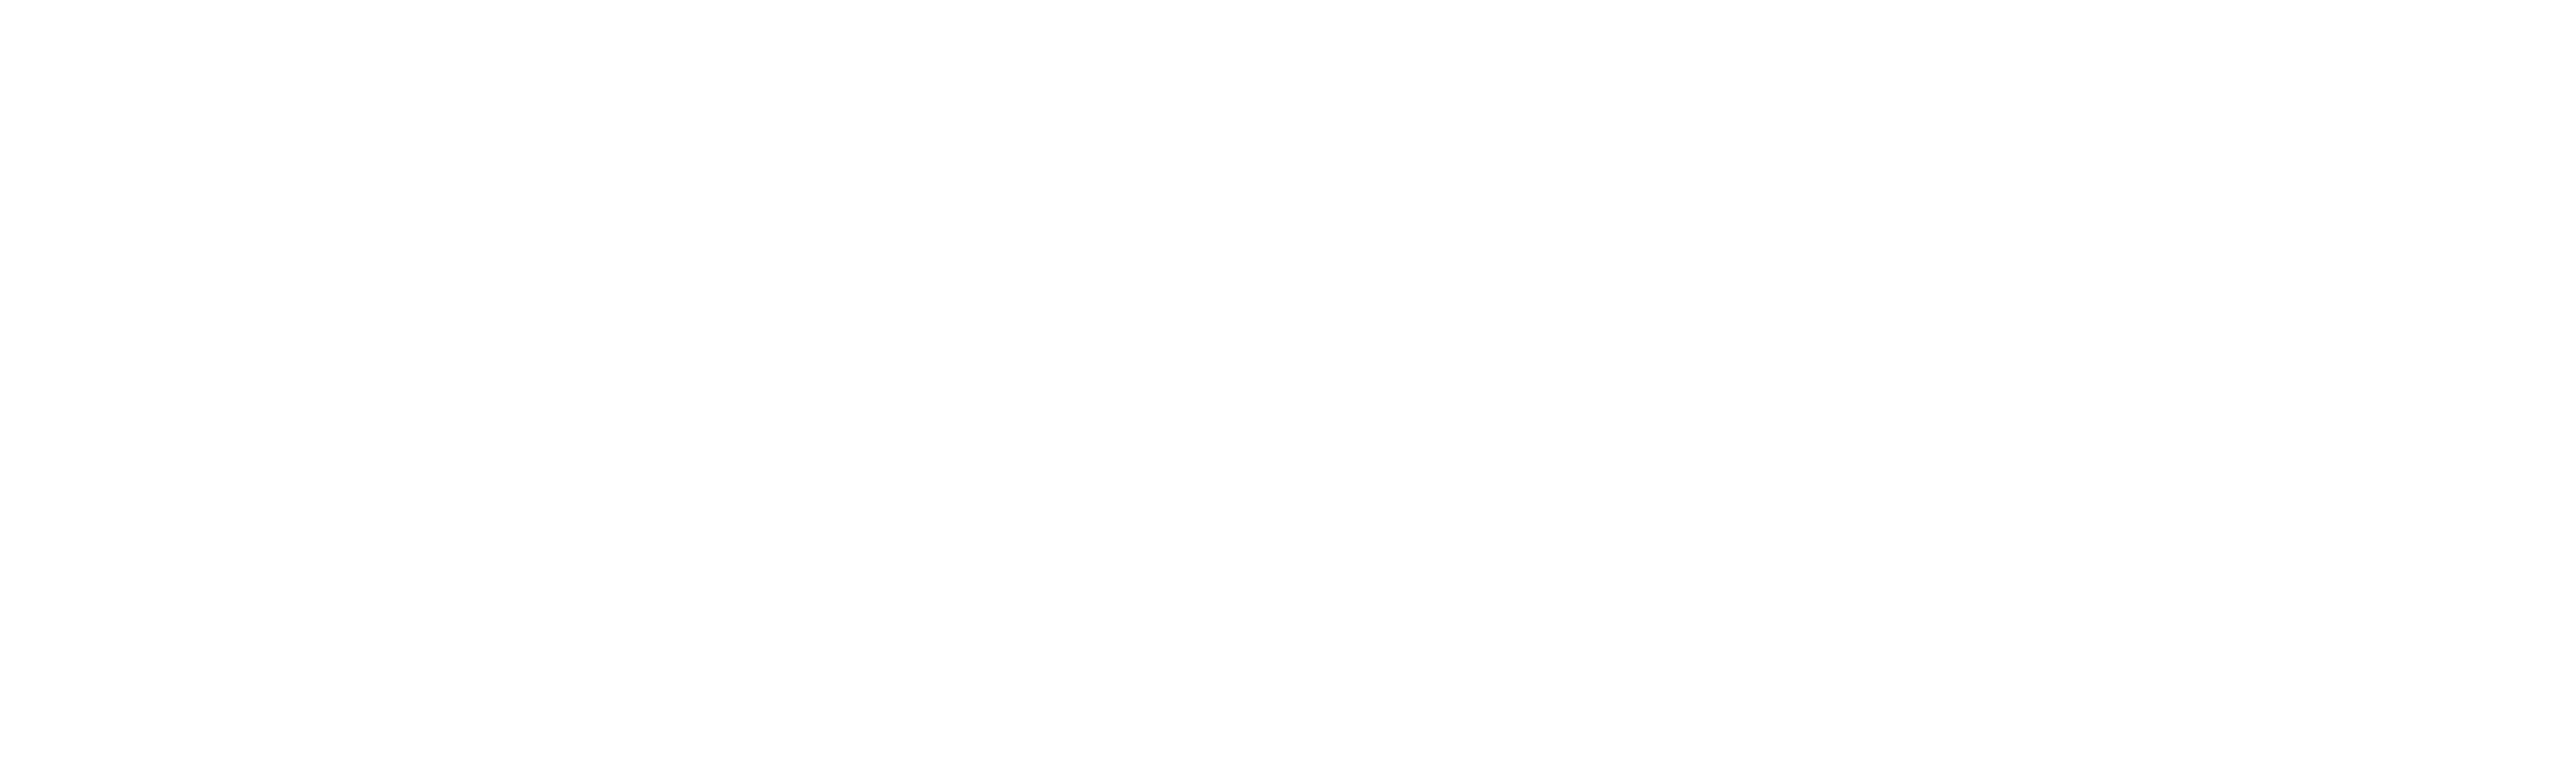 Hiram Flower Shop - Flower Delivery in Powder Springs, GA